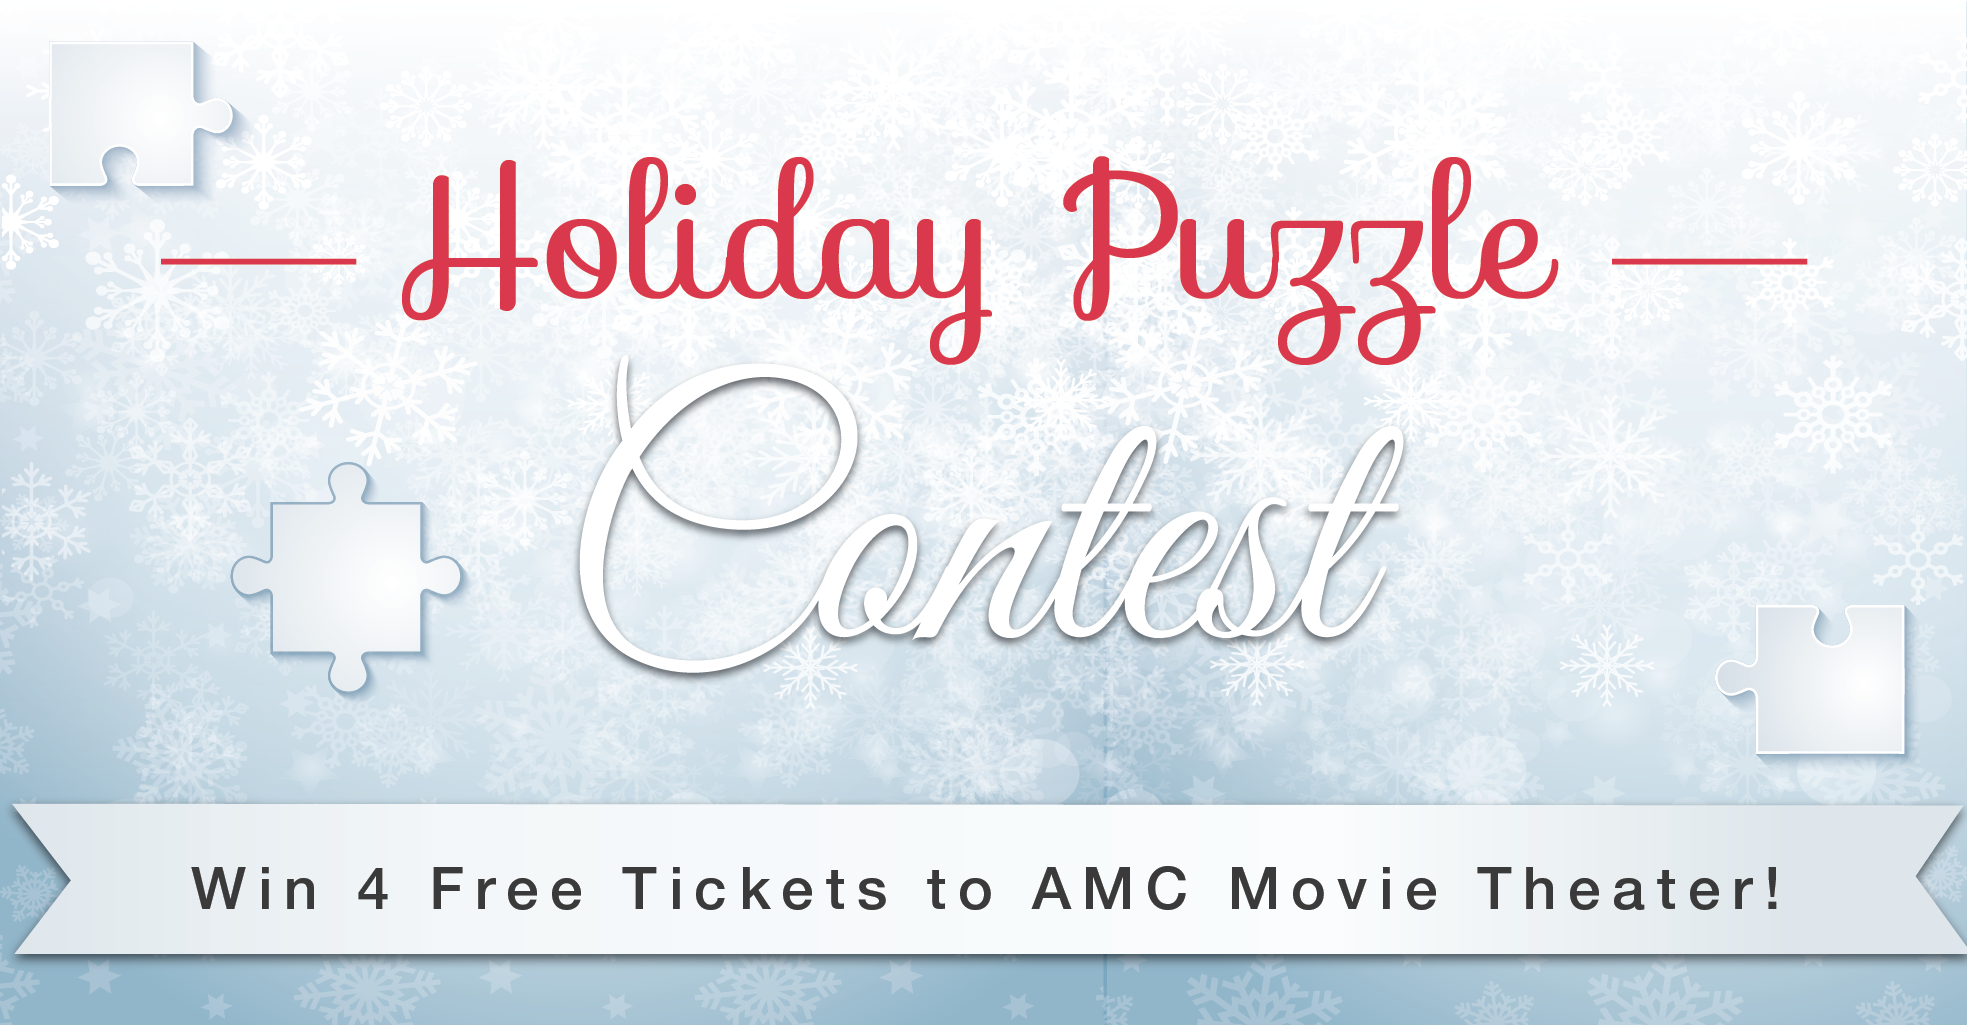 Affiliated Orthodontics Holiday Puzzle Contest